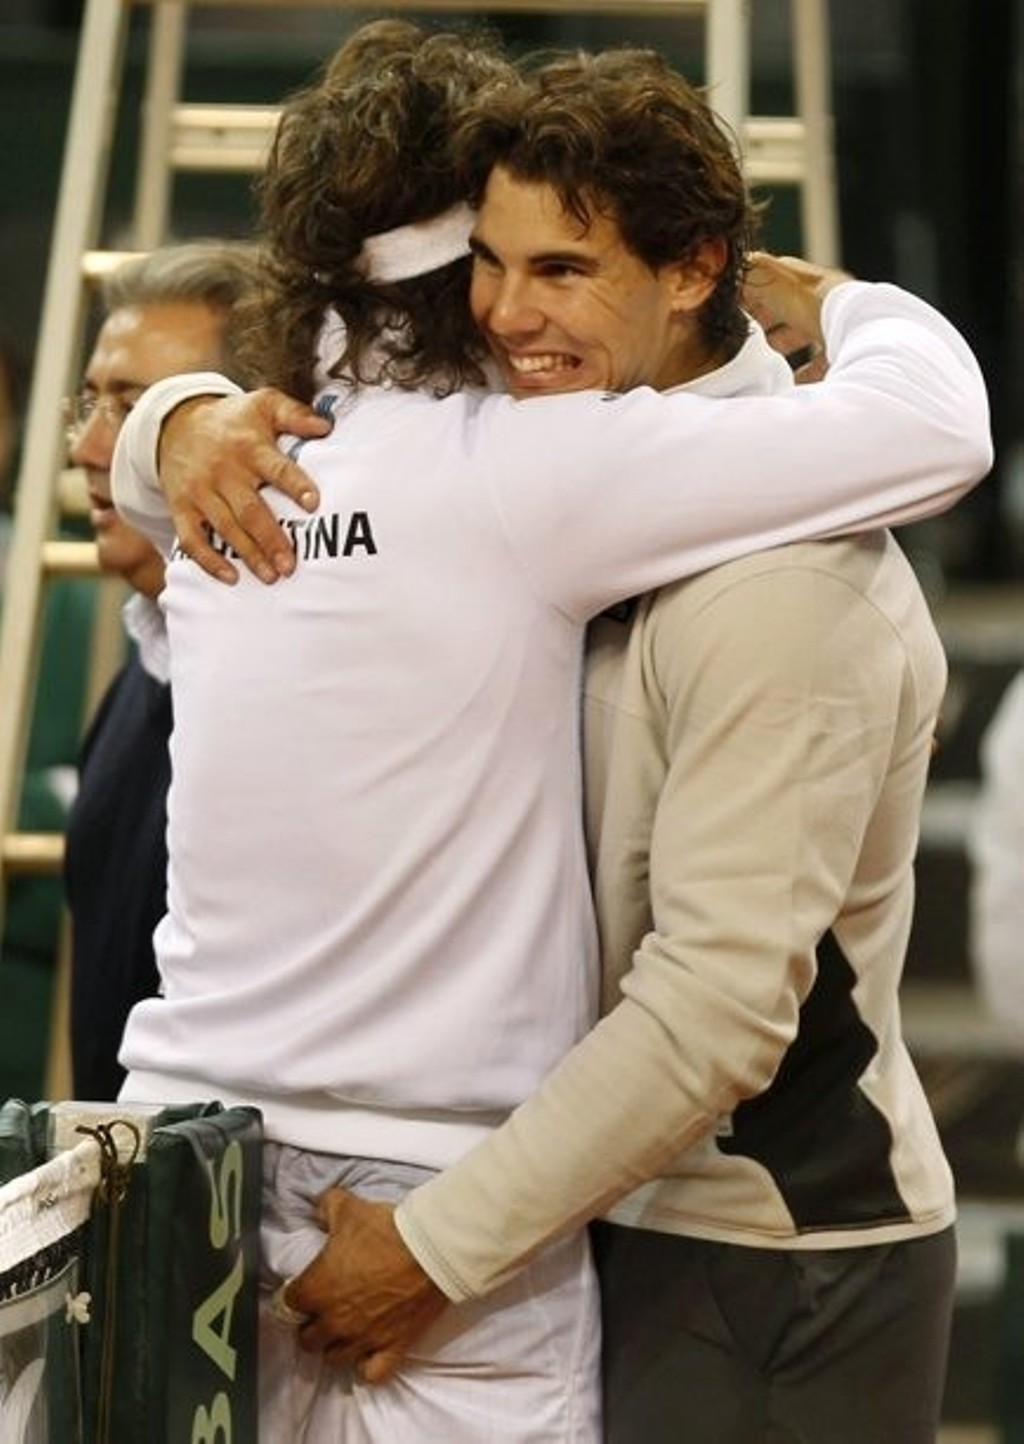 Rafael Nadal sexually harassed player !